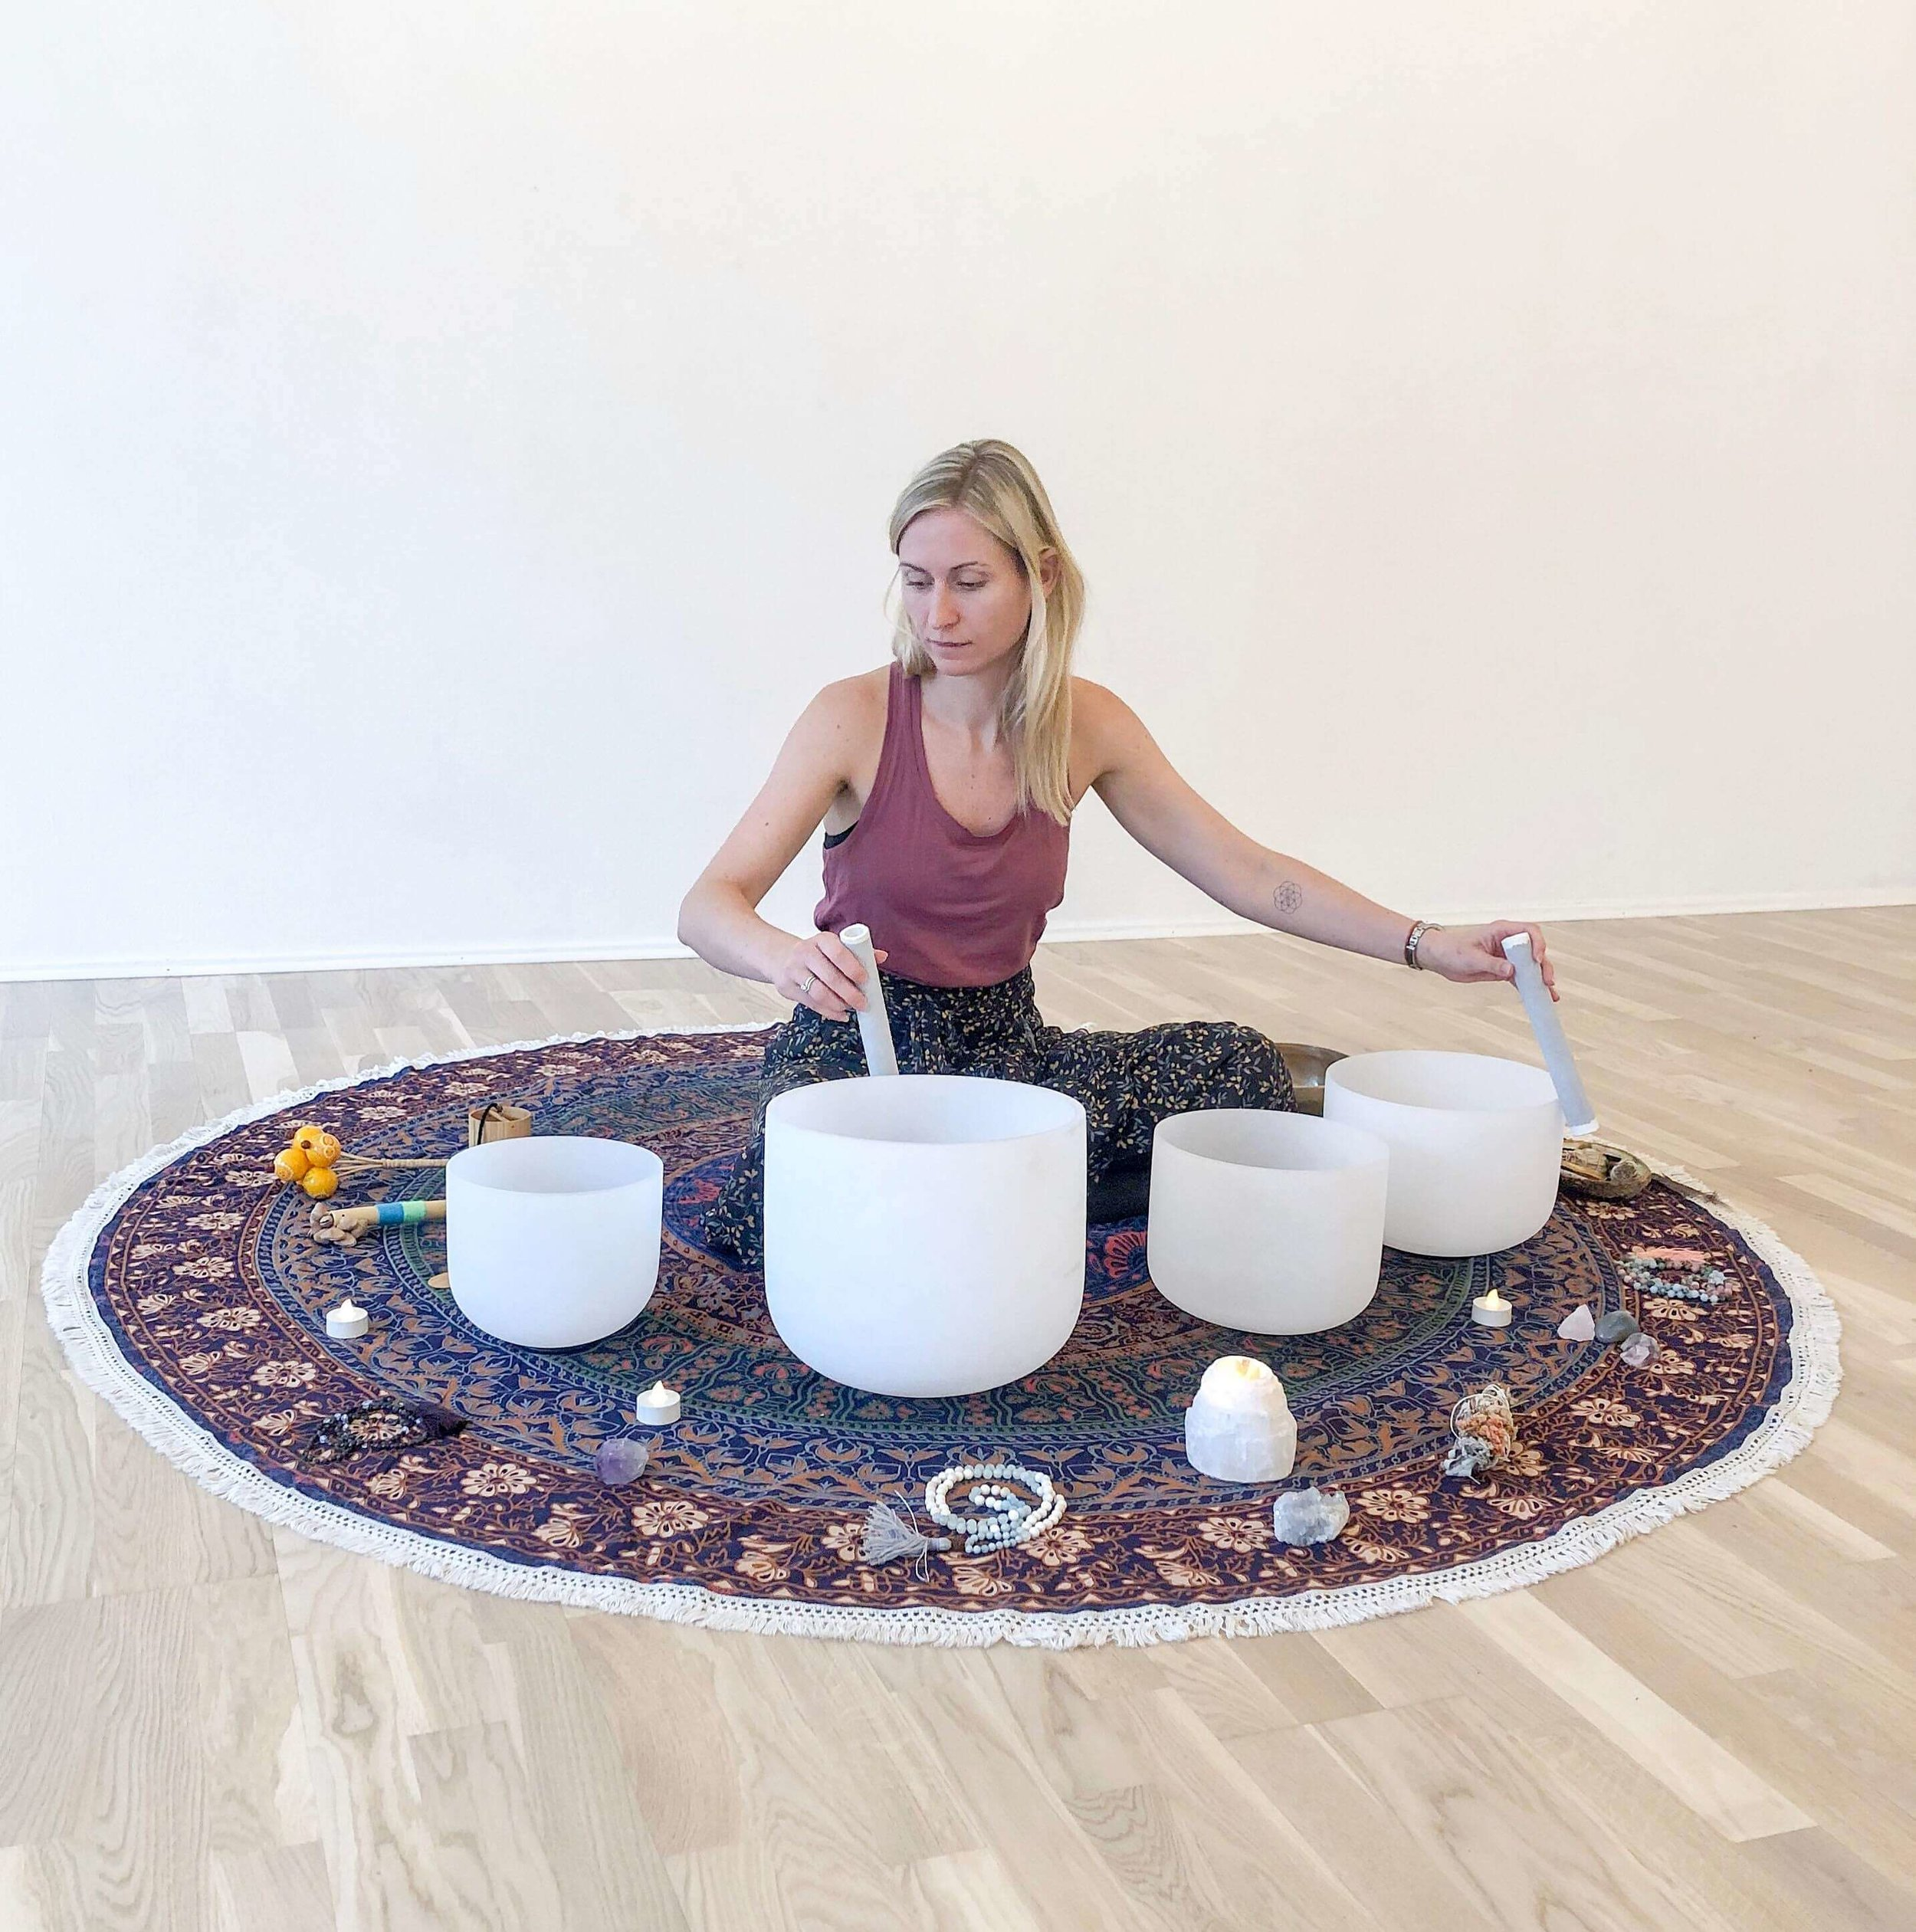 Enjoy the soothing sounds of crystal bowl vibrations during the daily Sound Baths. This retreat offers women to come together in a relaxing and soothing environment that welcomes everyone to share and hold space for one another.